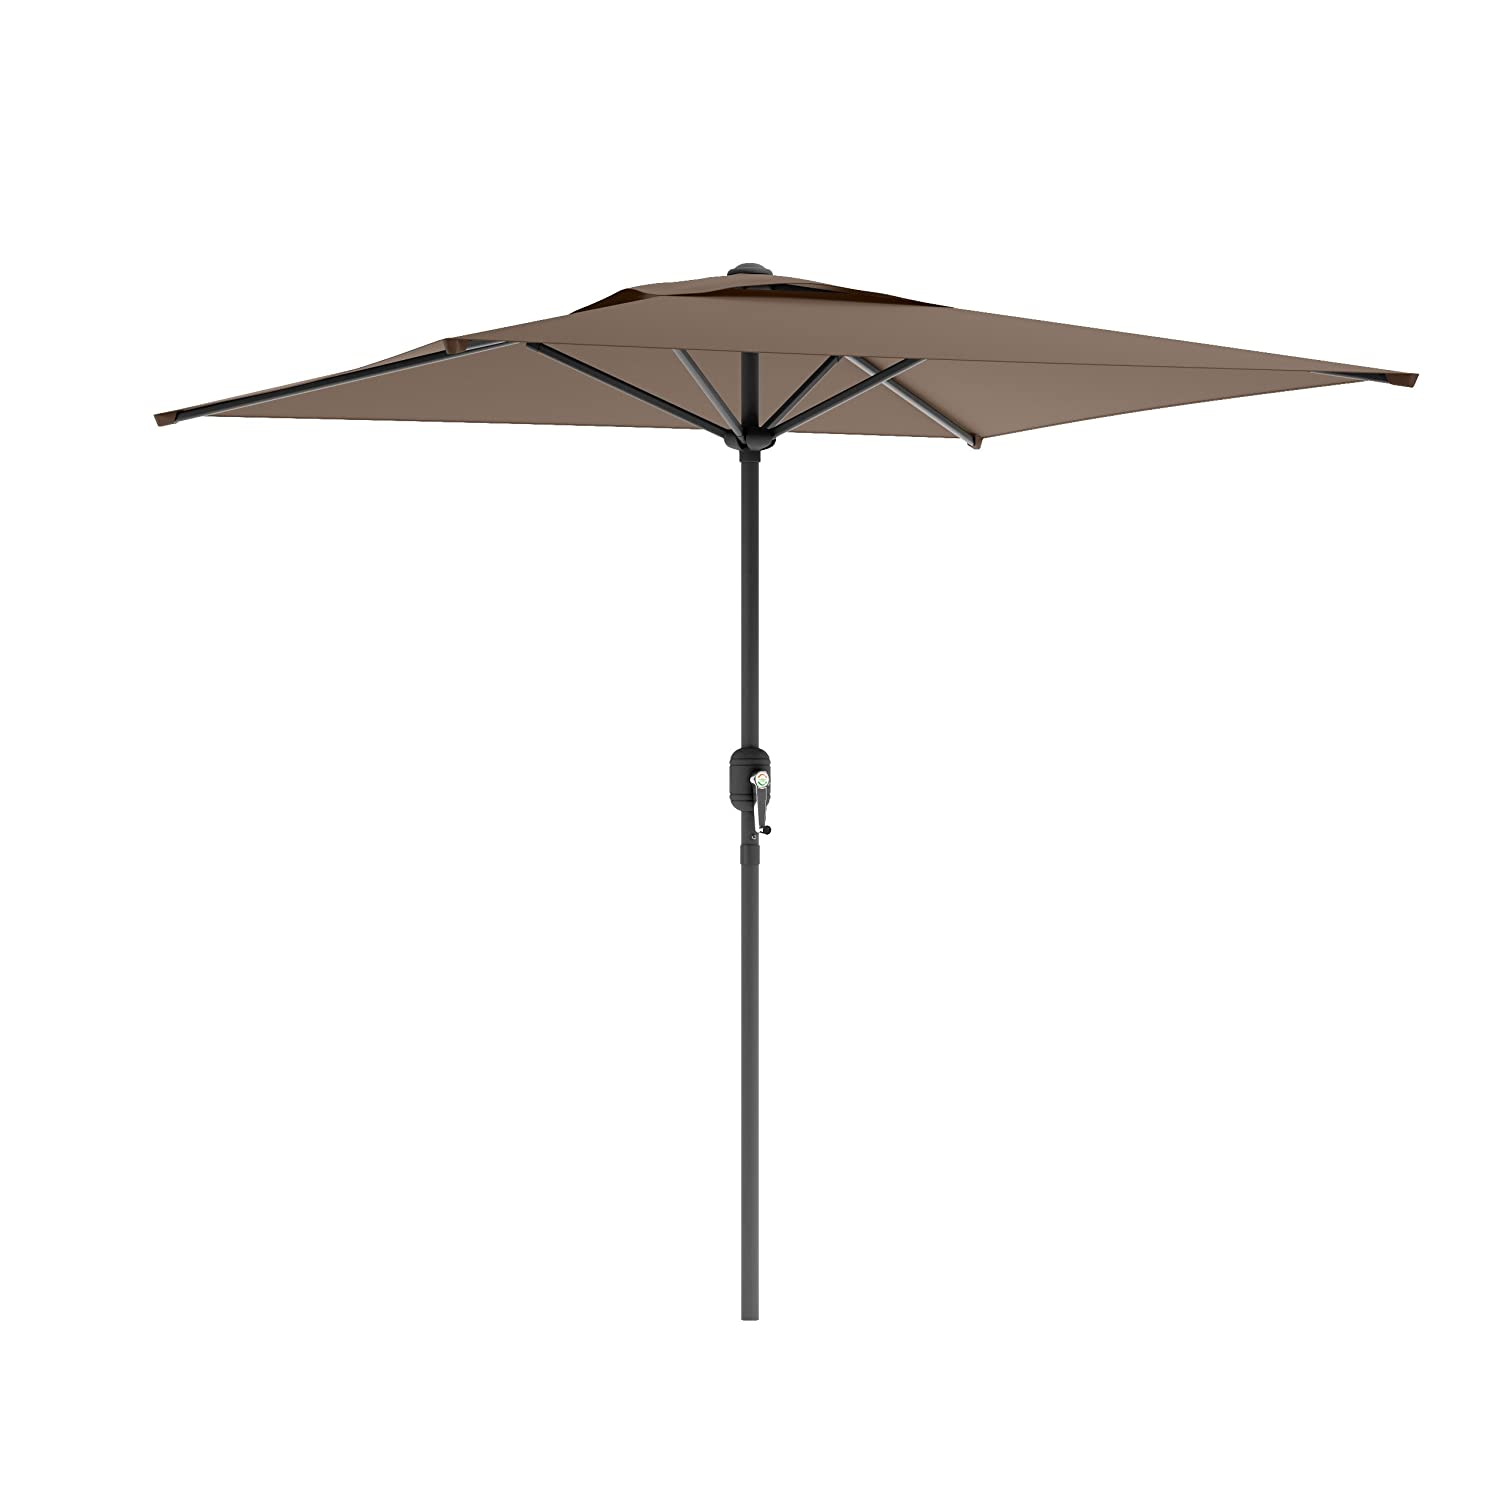 Amazon.com : CorLiving PPU 320 U Square Patio Umbrella, Sandy Brown :  Garden U0026 Outdoor